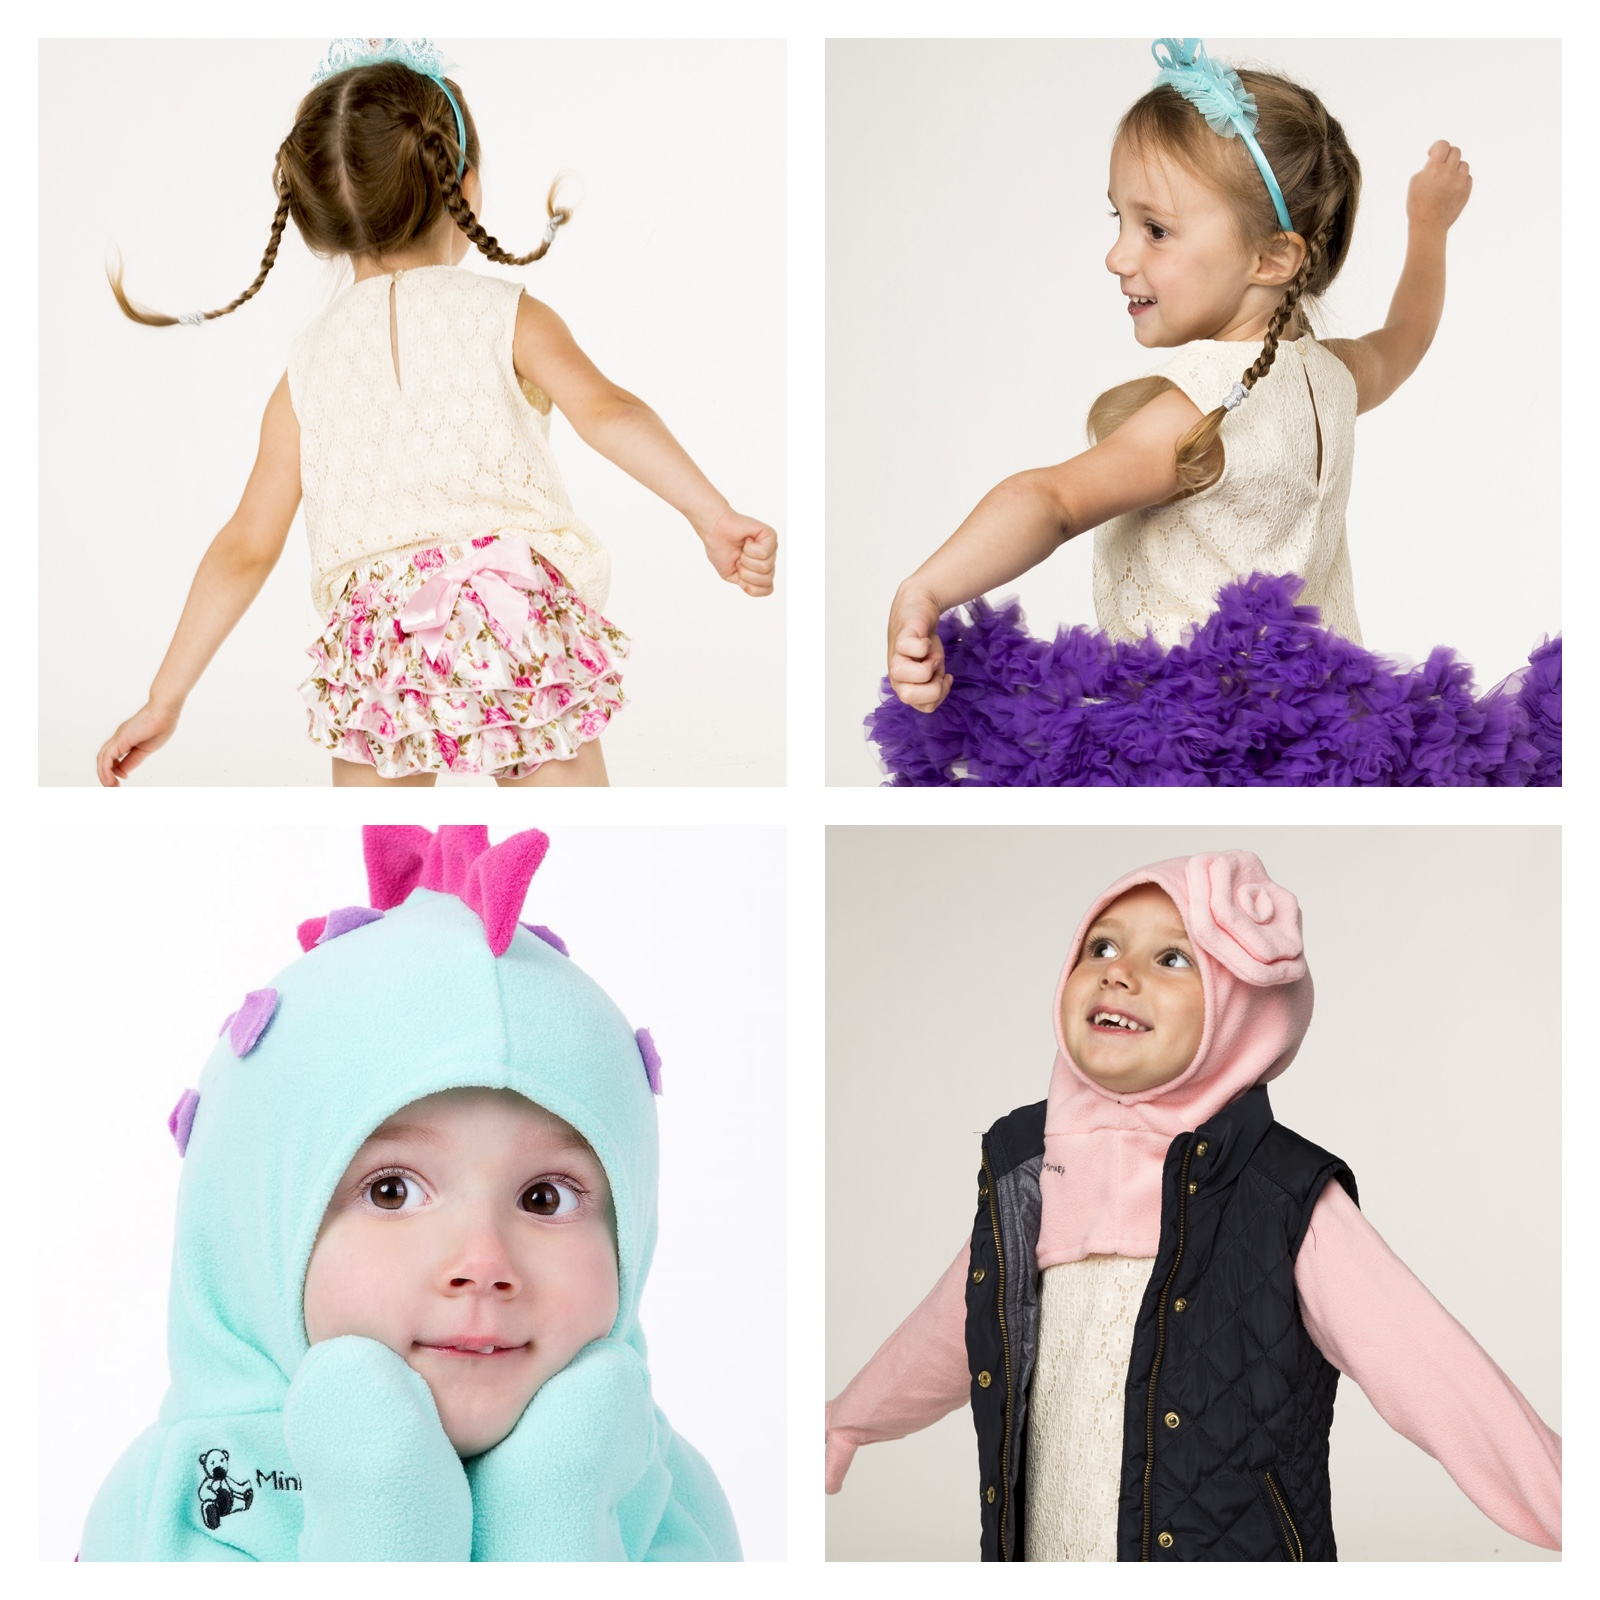 Enter to win a $100 OlieBaby shop gift card http://woobox.com/an4sto/jo2i1c